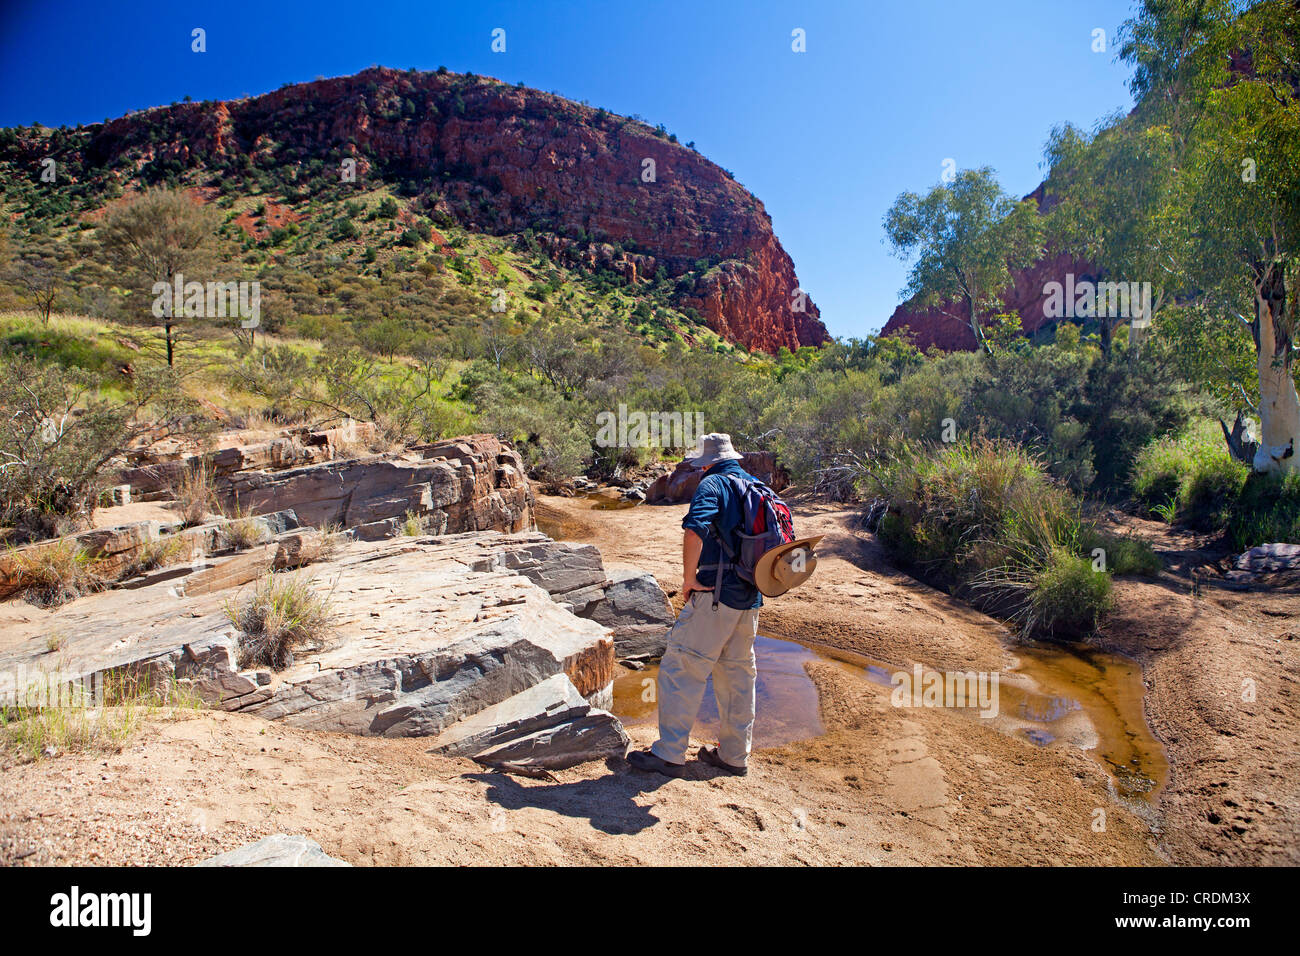 Bushwalker near the entrance to Simpsons Gap in the West MacDonnell Ranges - Stock Image